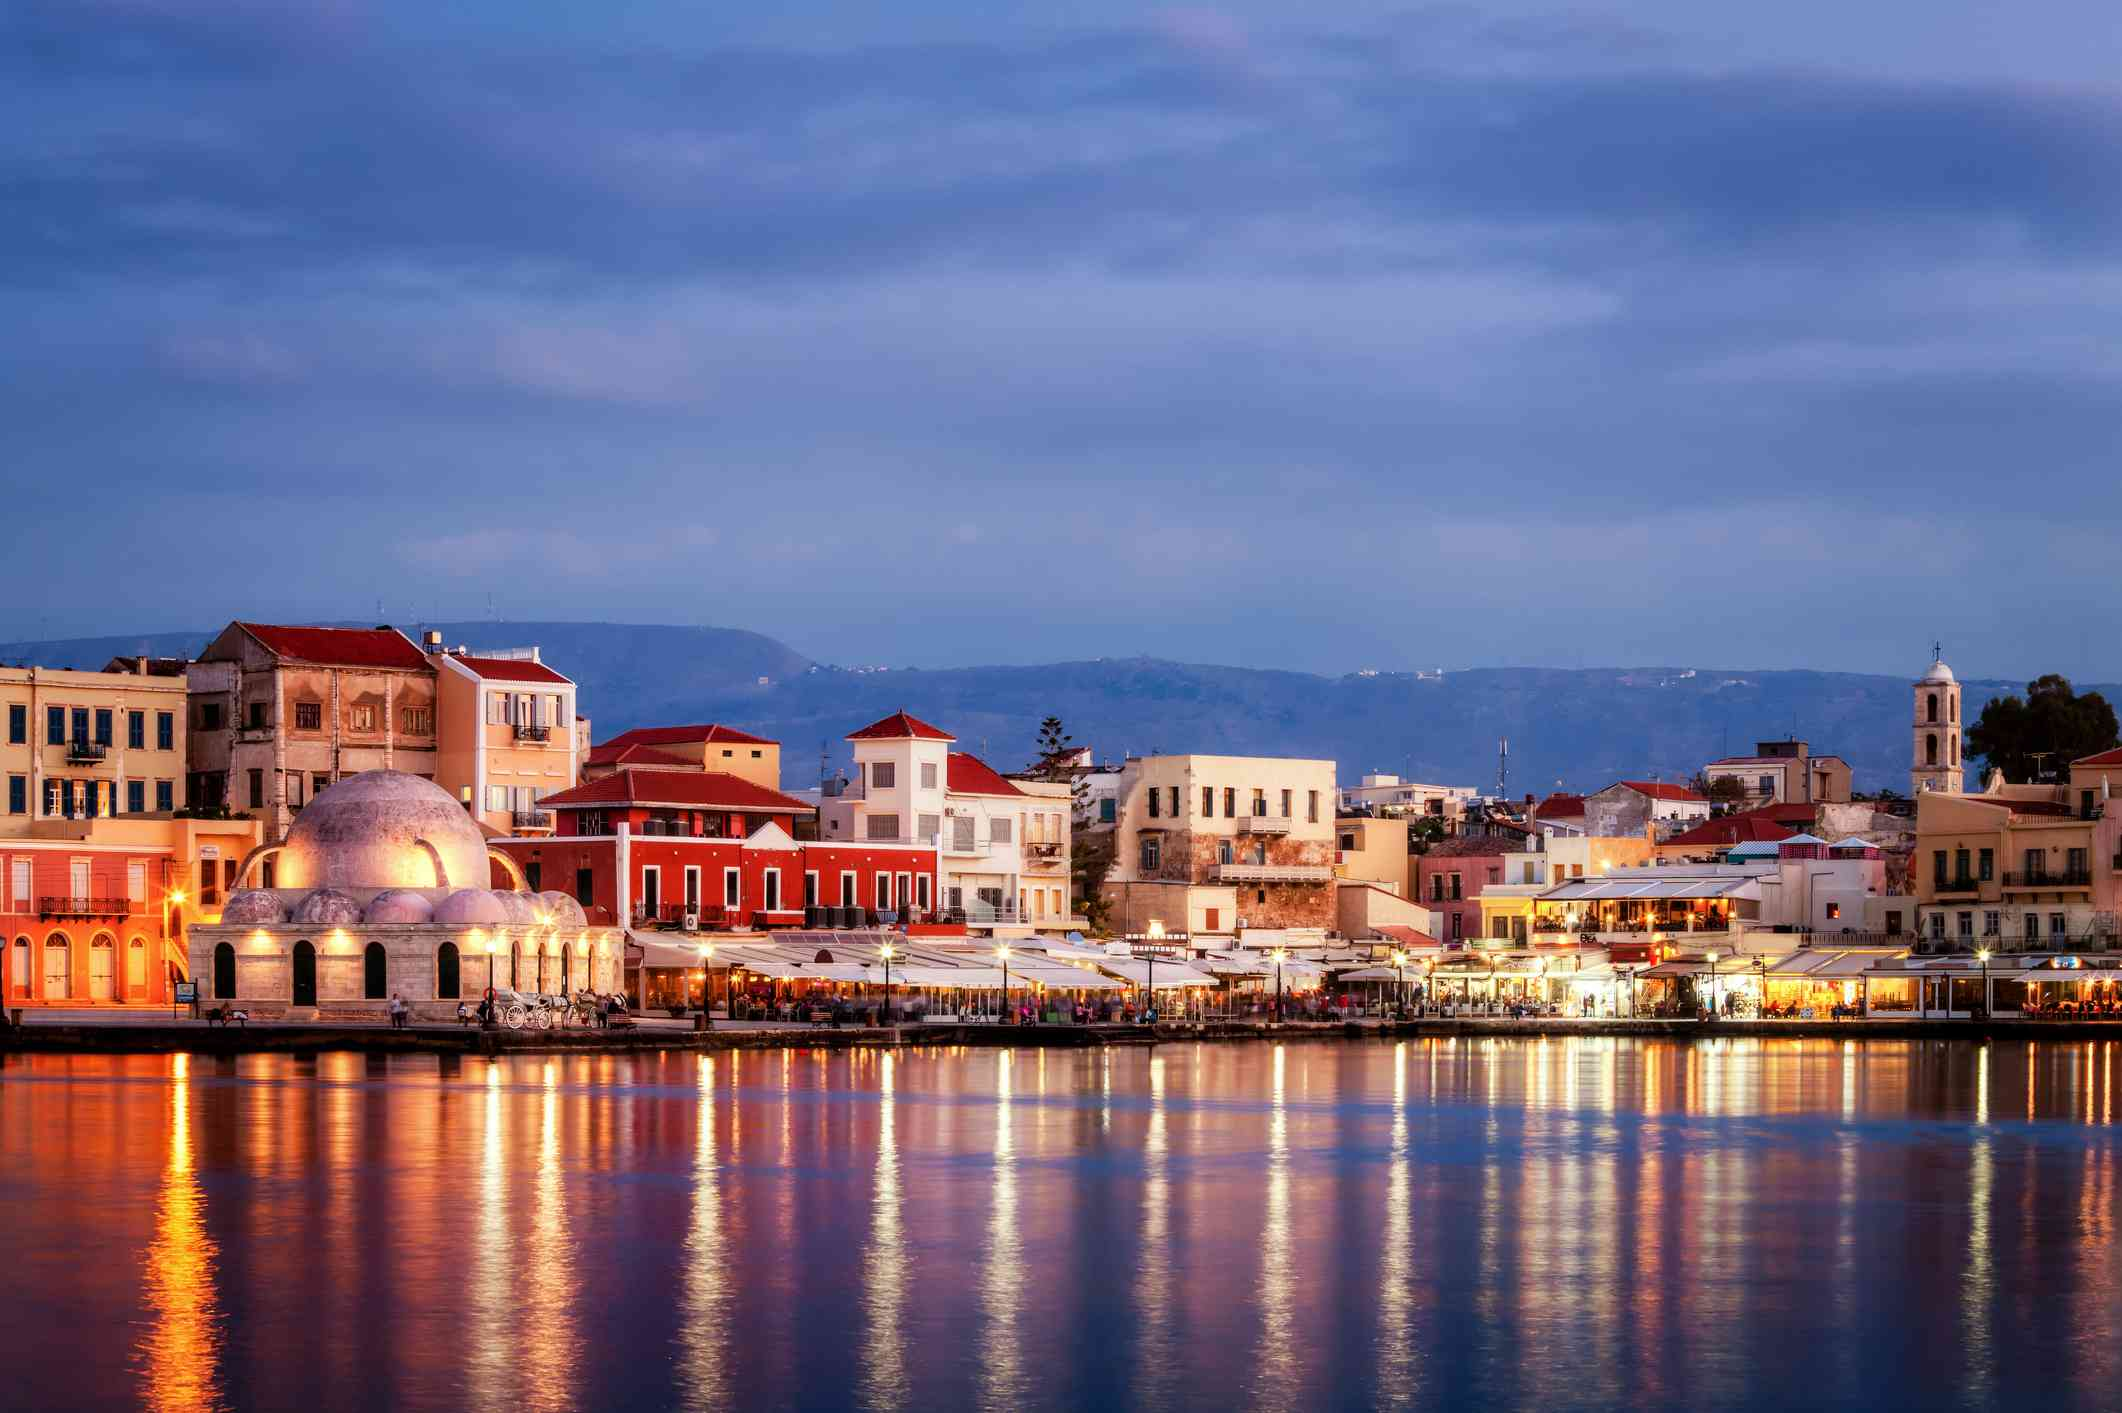 The old Mosque at Chania Harbour, Crete, Greece